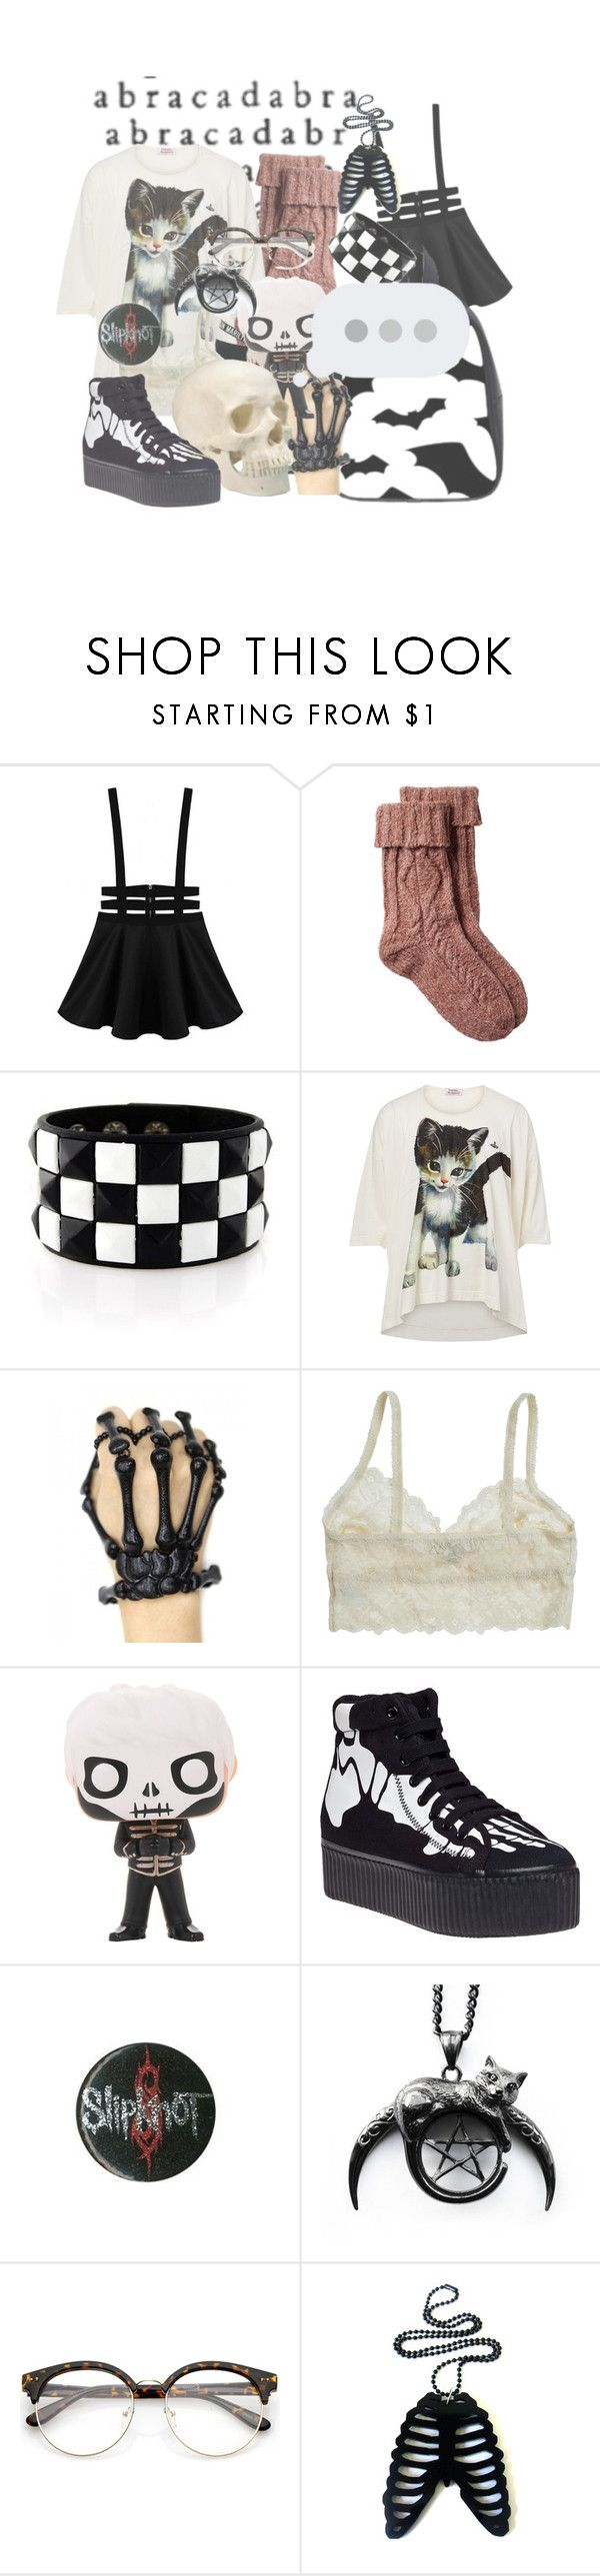 """""""Together lets breathe, together to the beat but there's hope out the window so that's where we'll go - lets go outside and all join hands; until then, they'll never understand"""" by diana-littlefield ❤ liked on Polyvore featuring Fat Face, Vivienne Westwood, Funko and Jeffrey Campbell"""